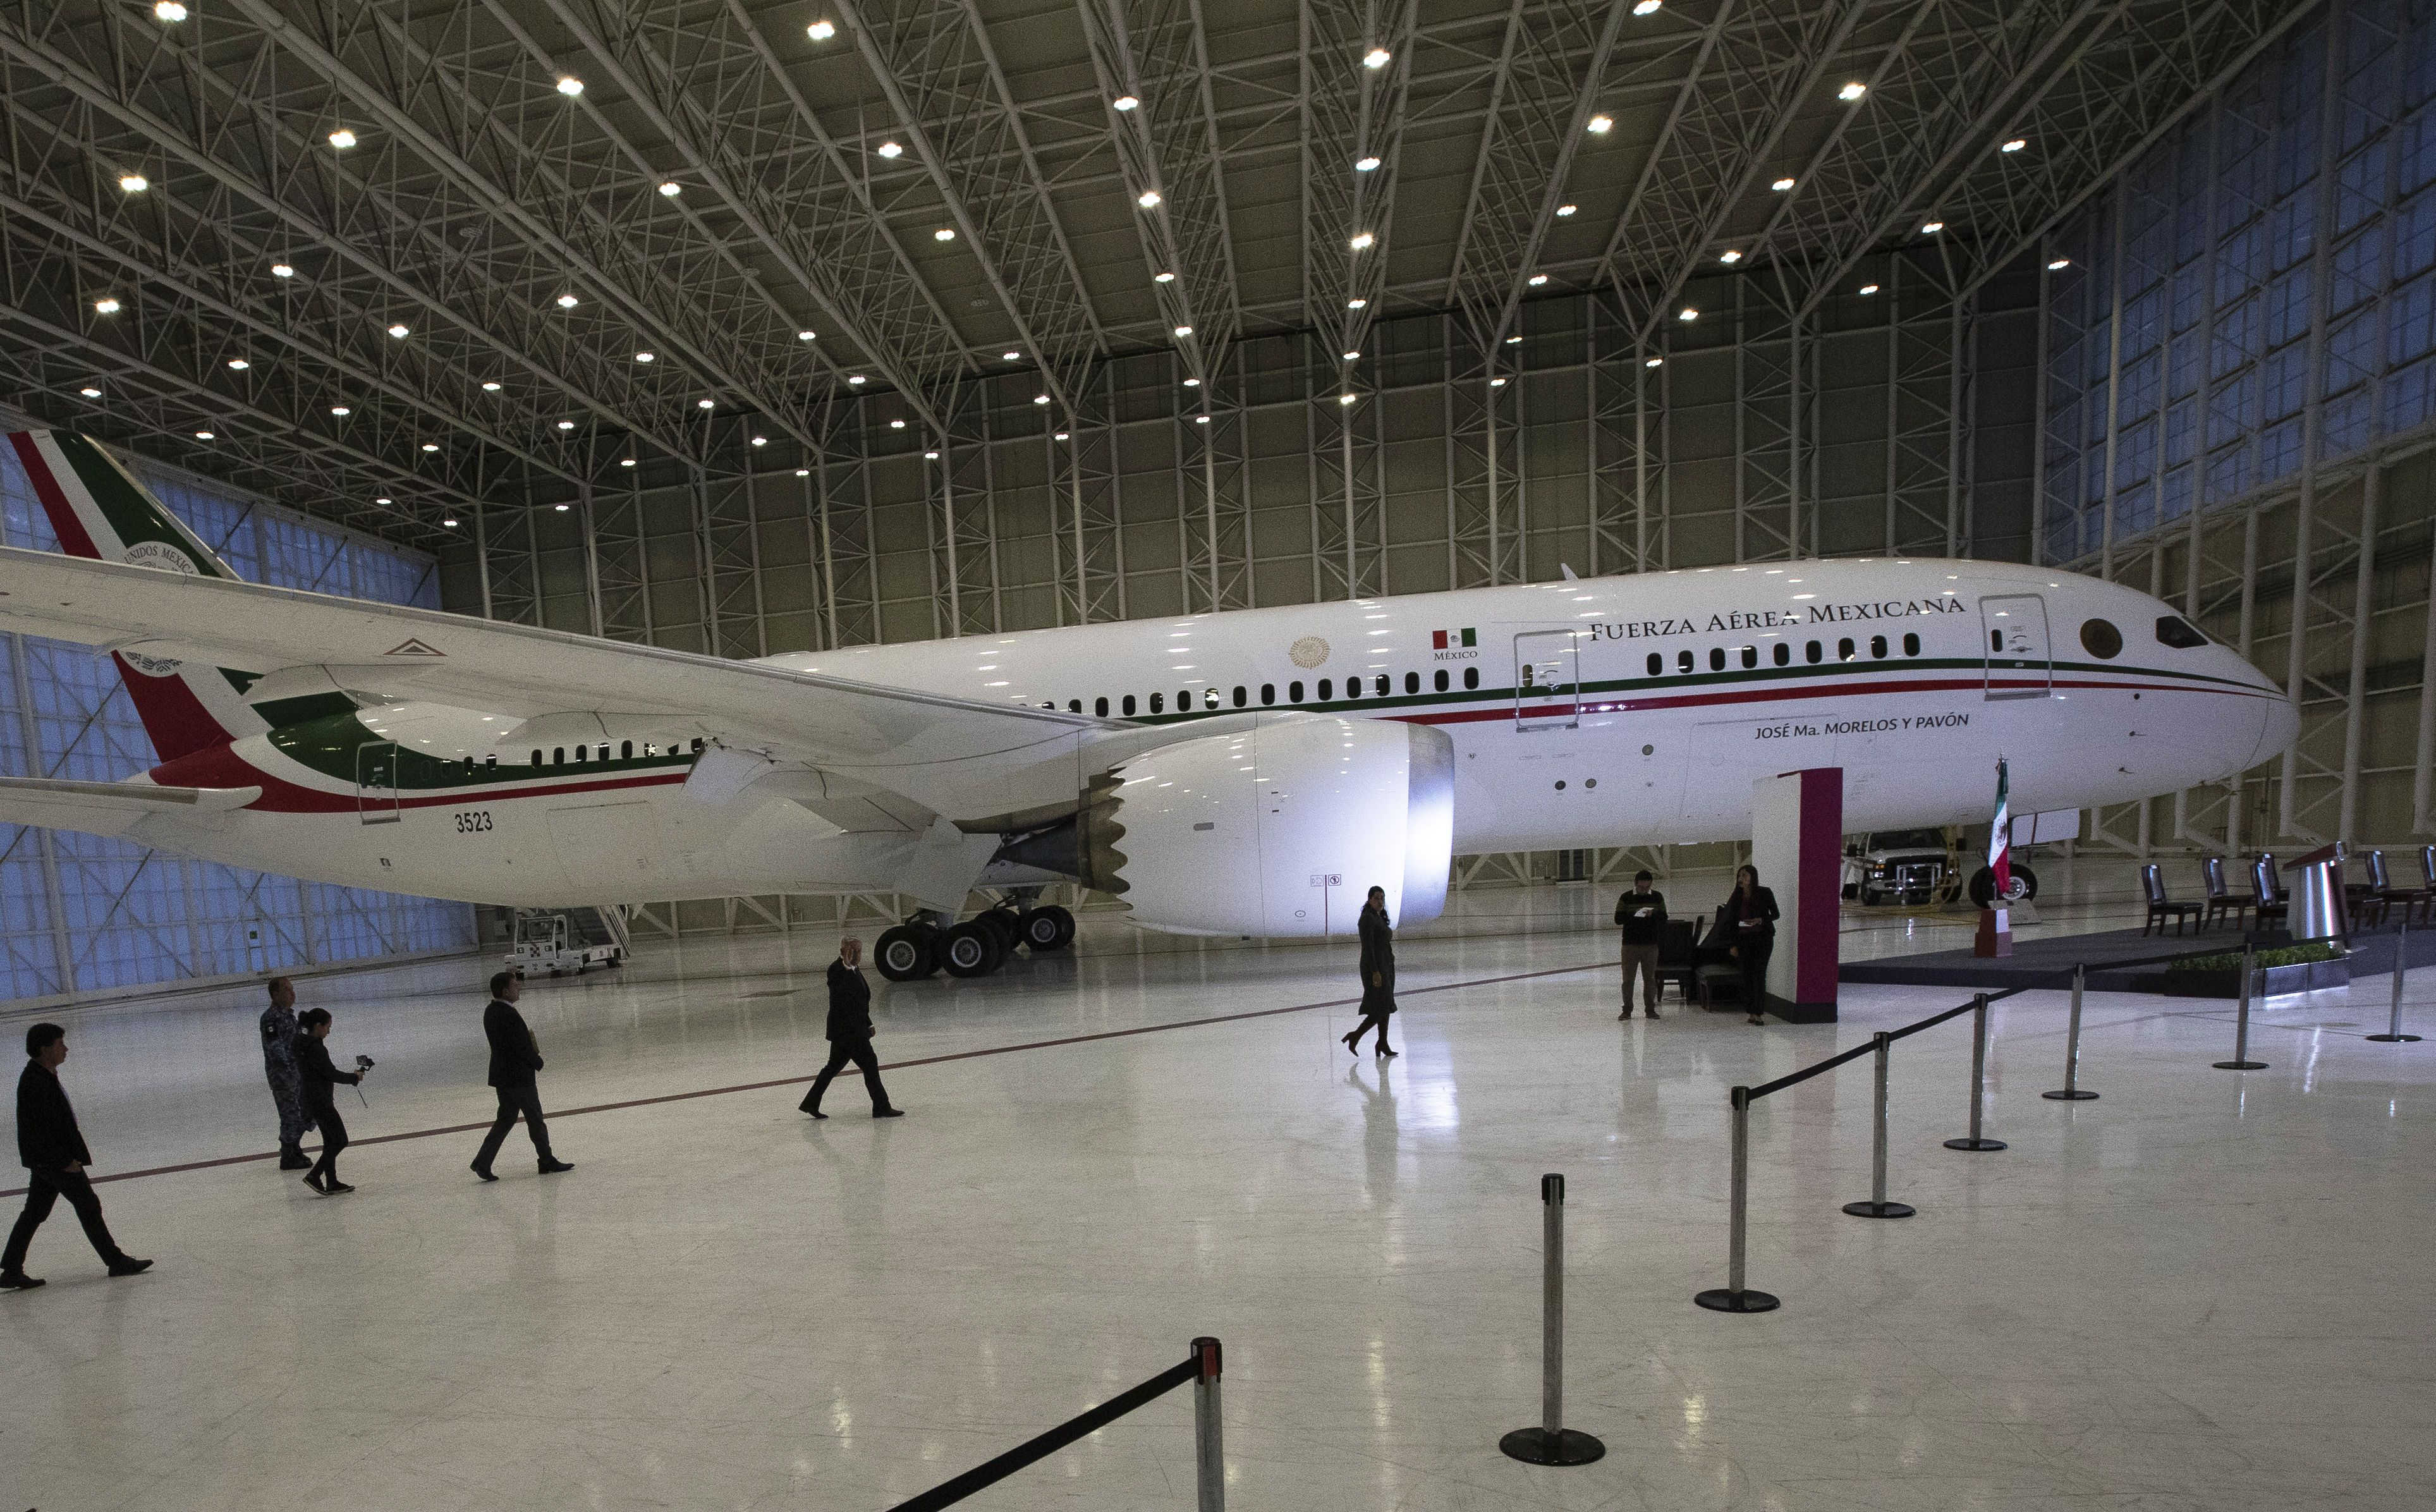 Mexico bid to sell presidential jet stretches into 3rd year